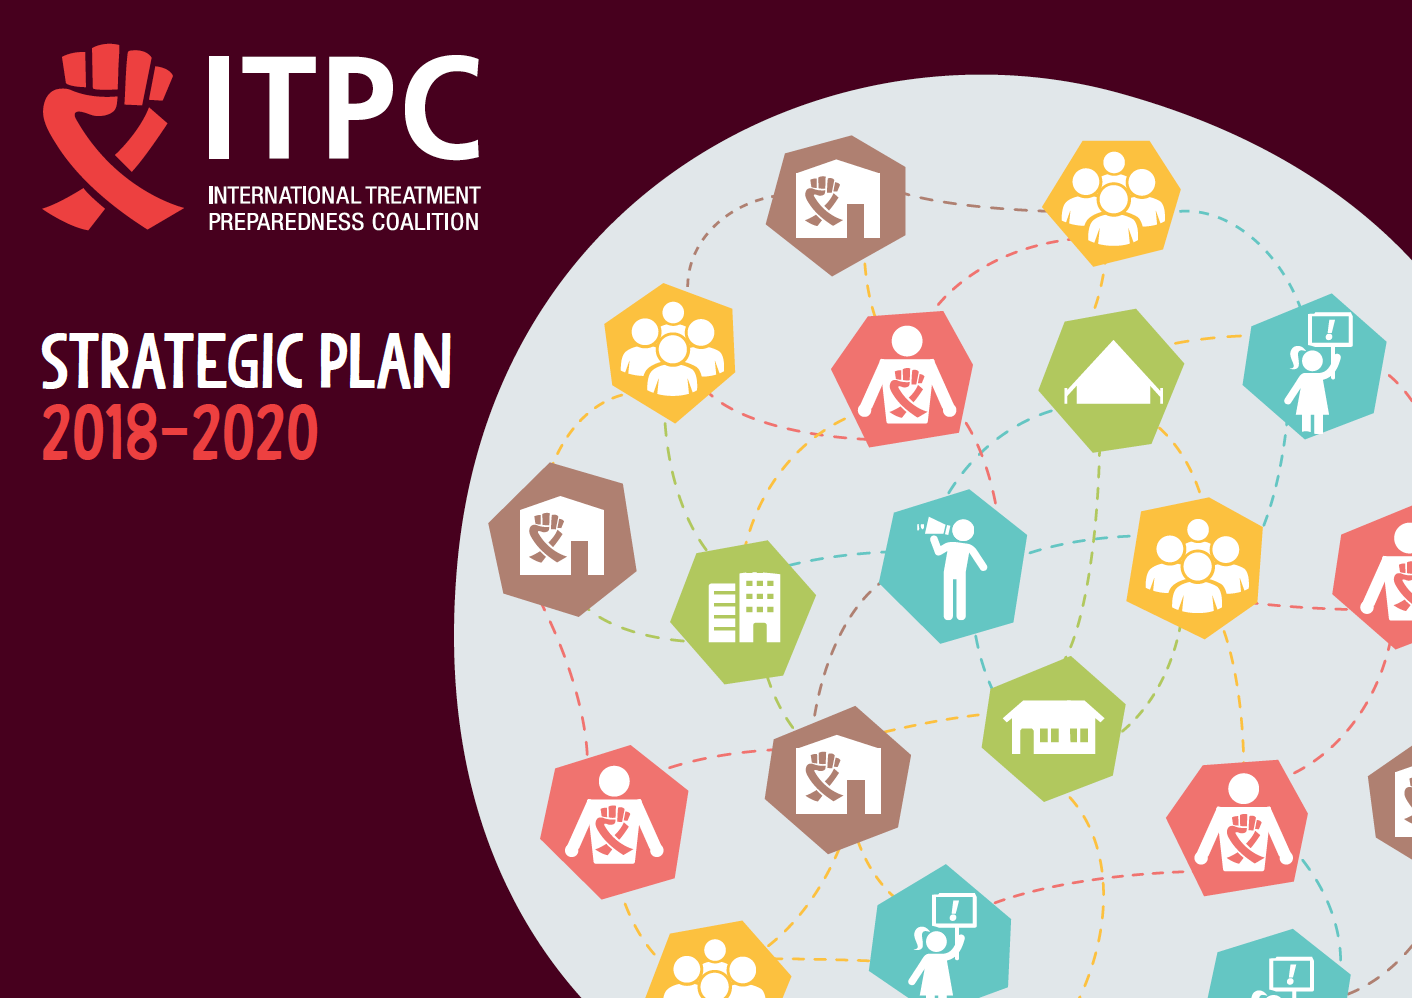 itpc strategic plan 2018-2020 cover photo